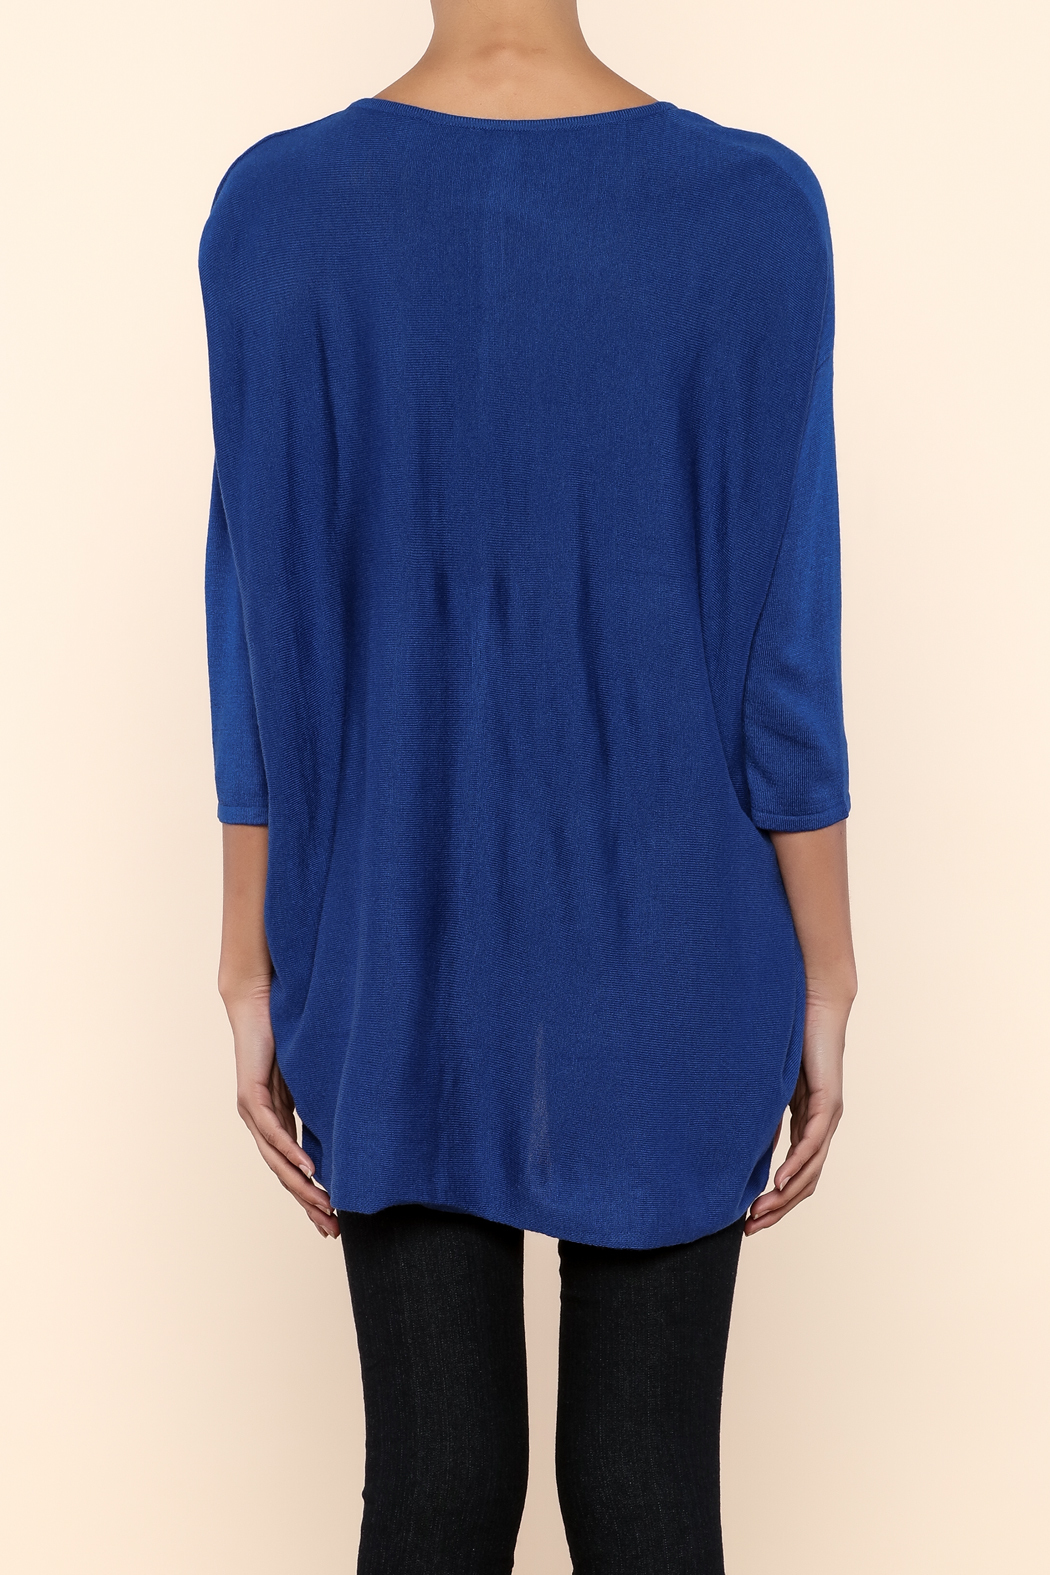 Kerisma Blue V-Neck Sweater - Back Cropped Image